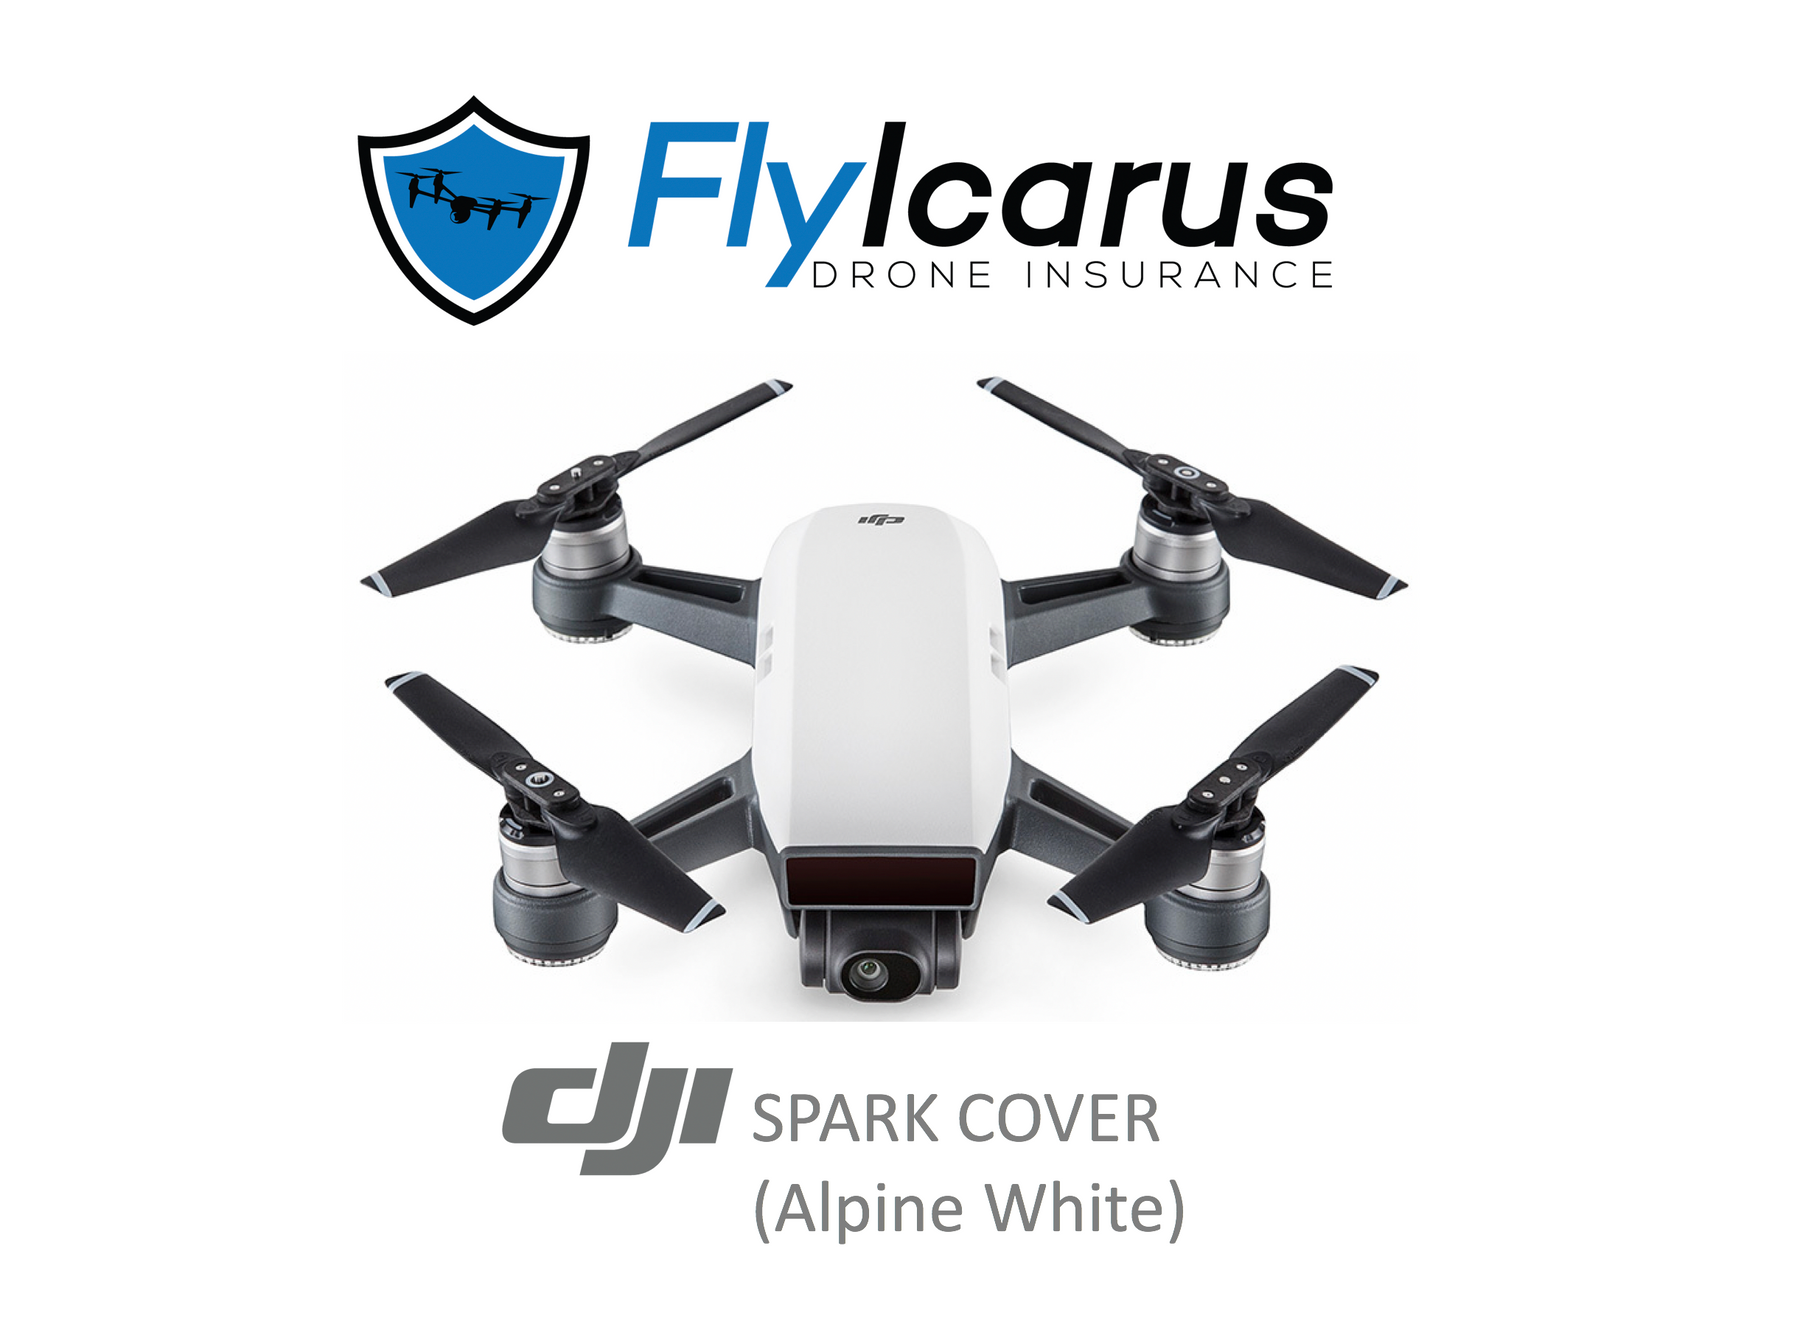 DJI Spark (Alpine White) Hobby Drone Insurance - Annual Cover - FlyIcarus Drone Insurance